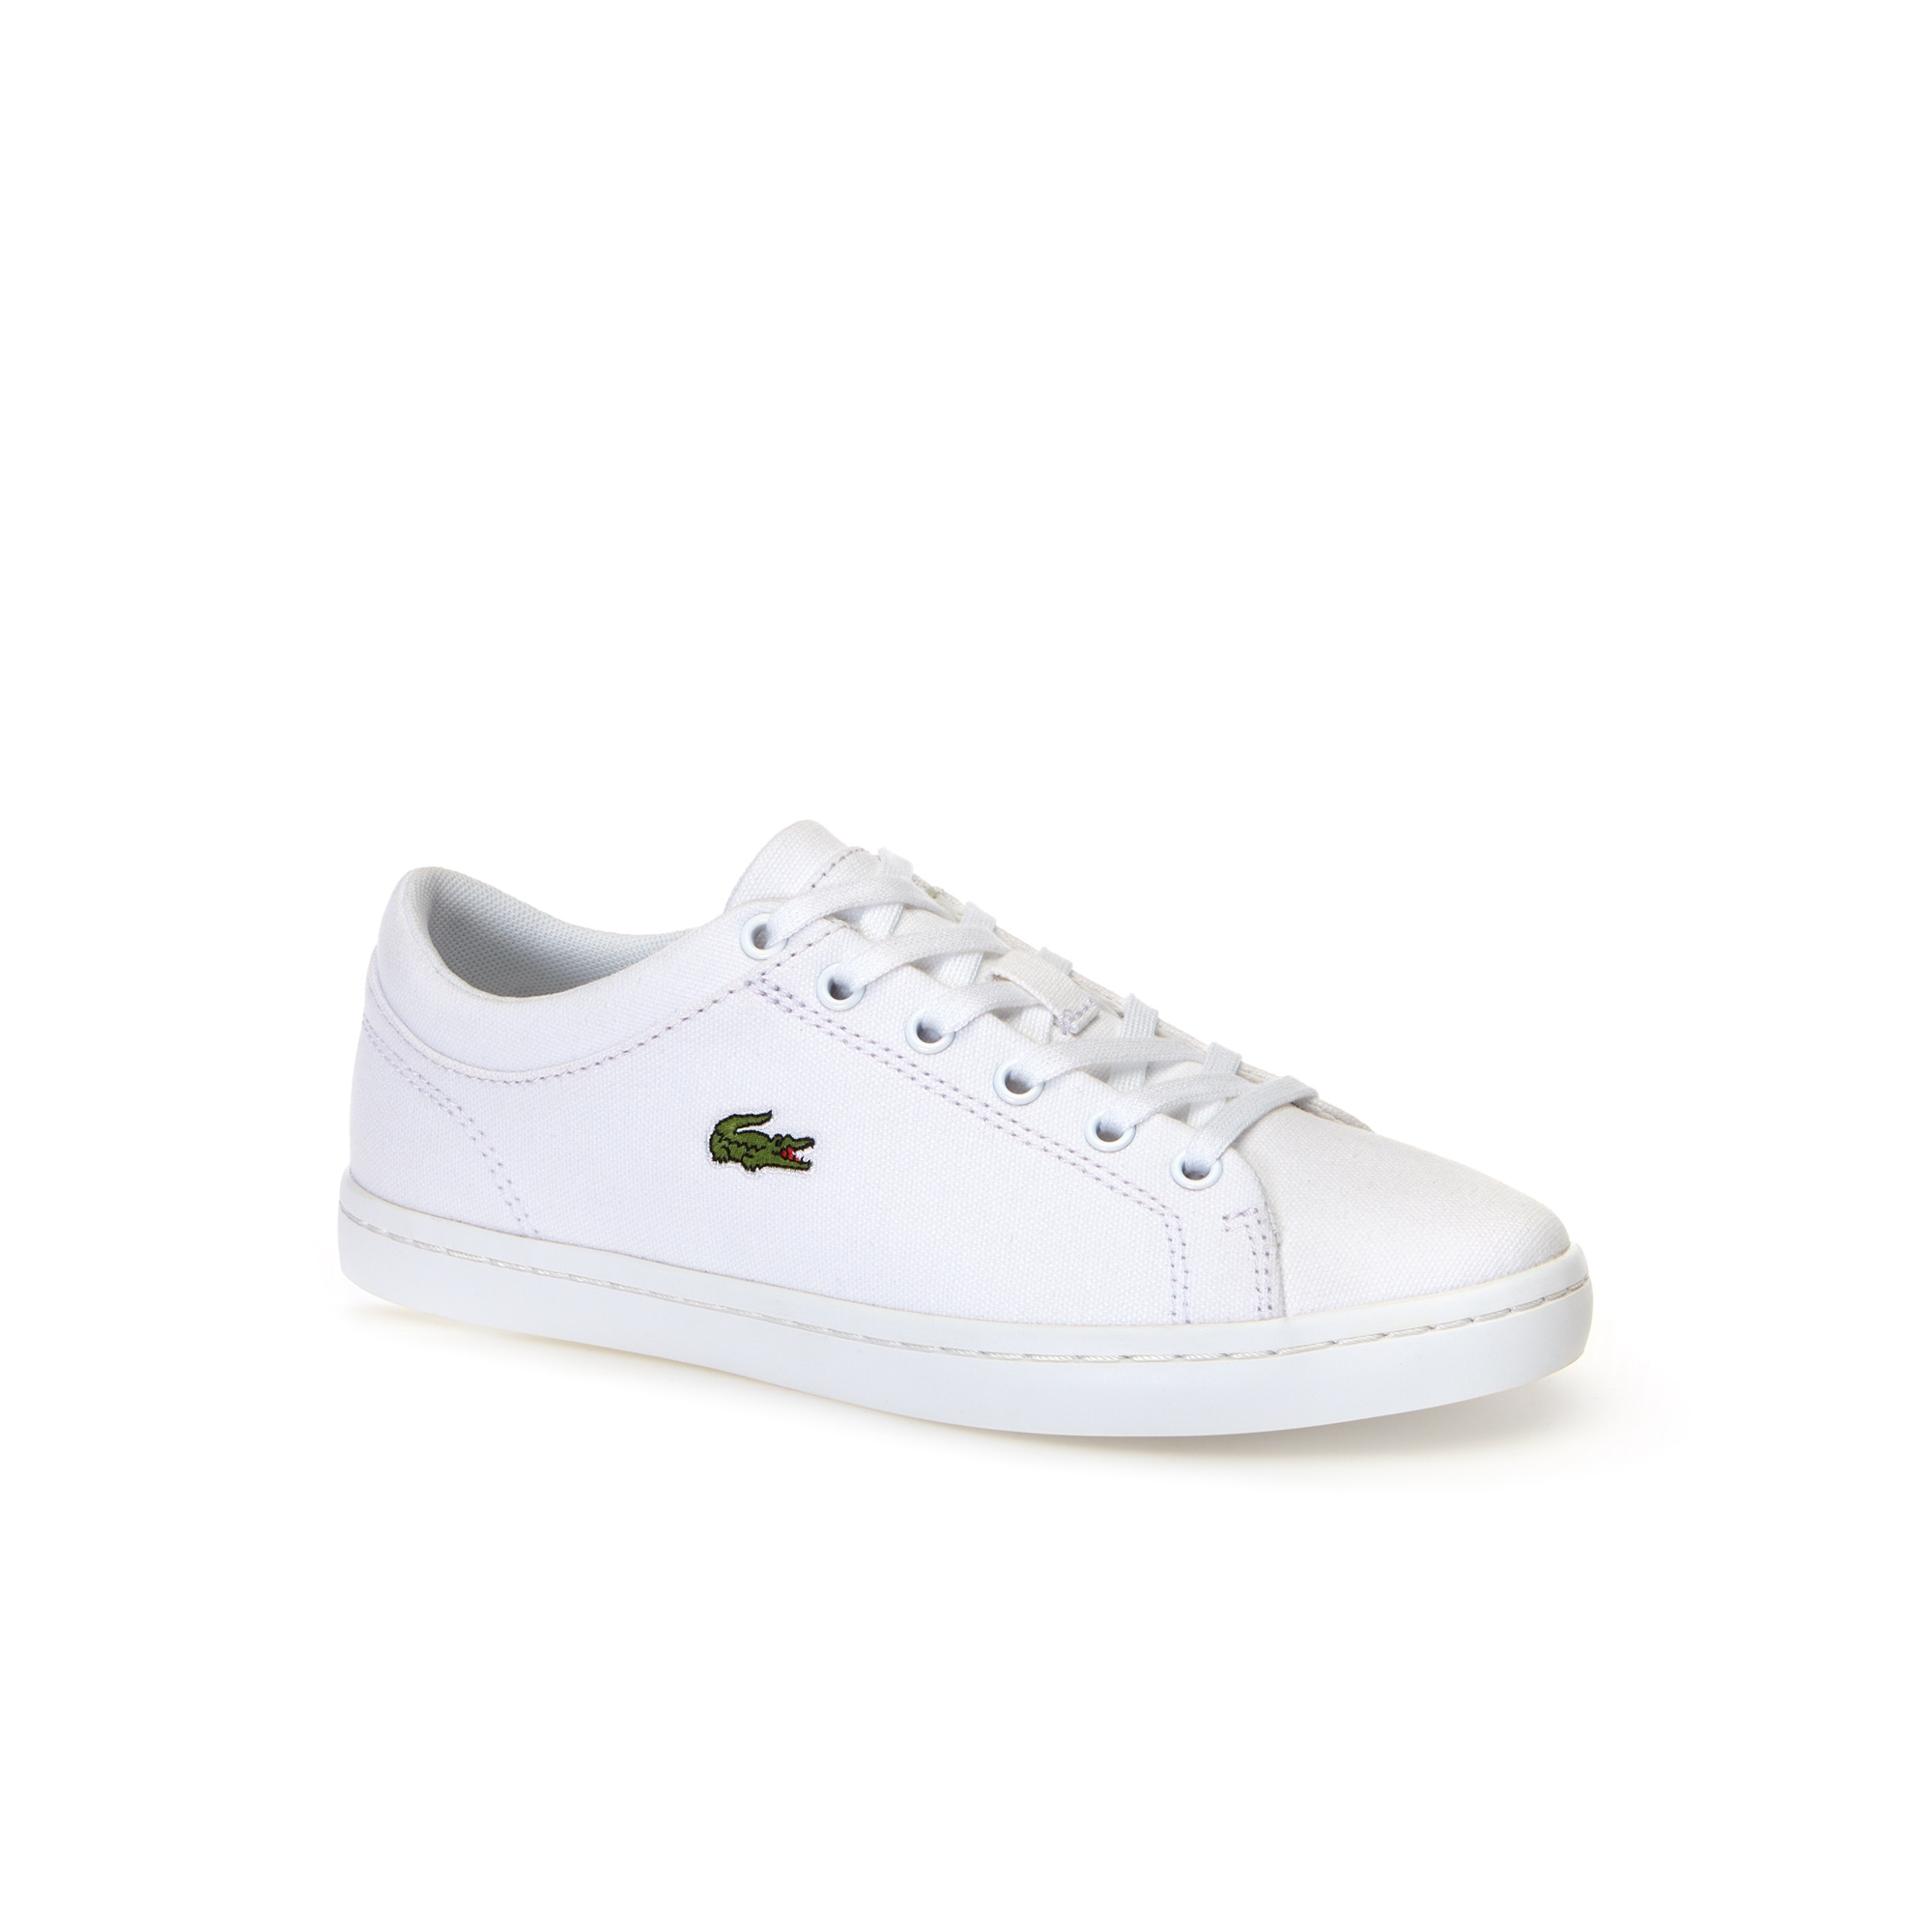 Women's Straightset Textile Sneakers